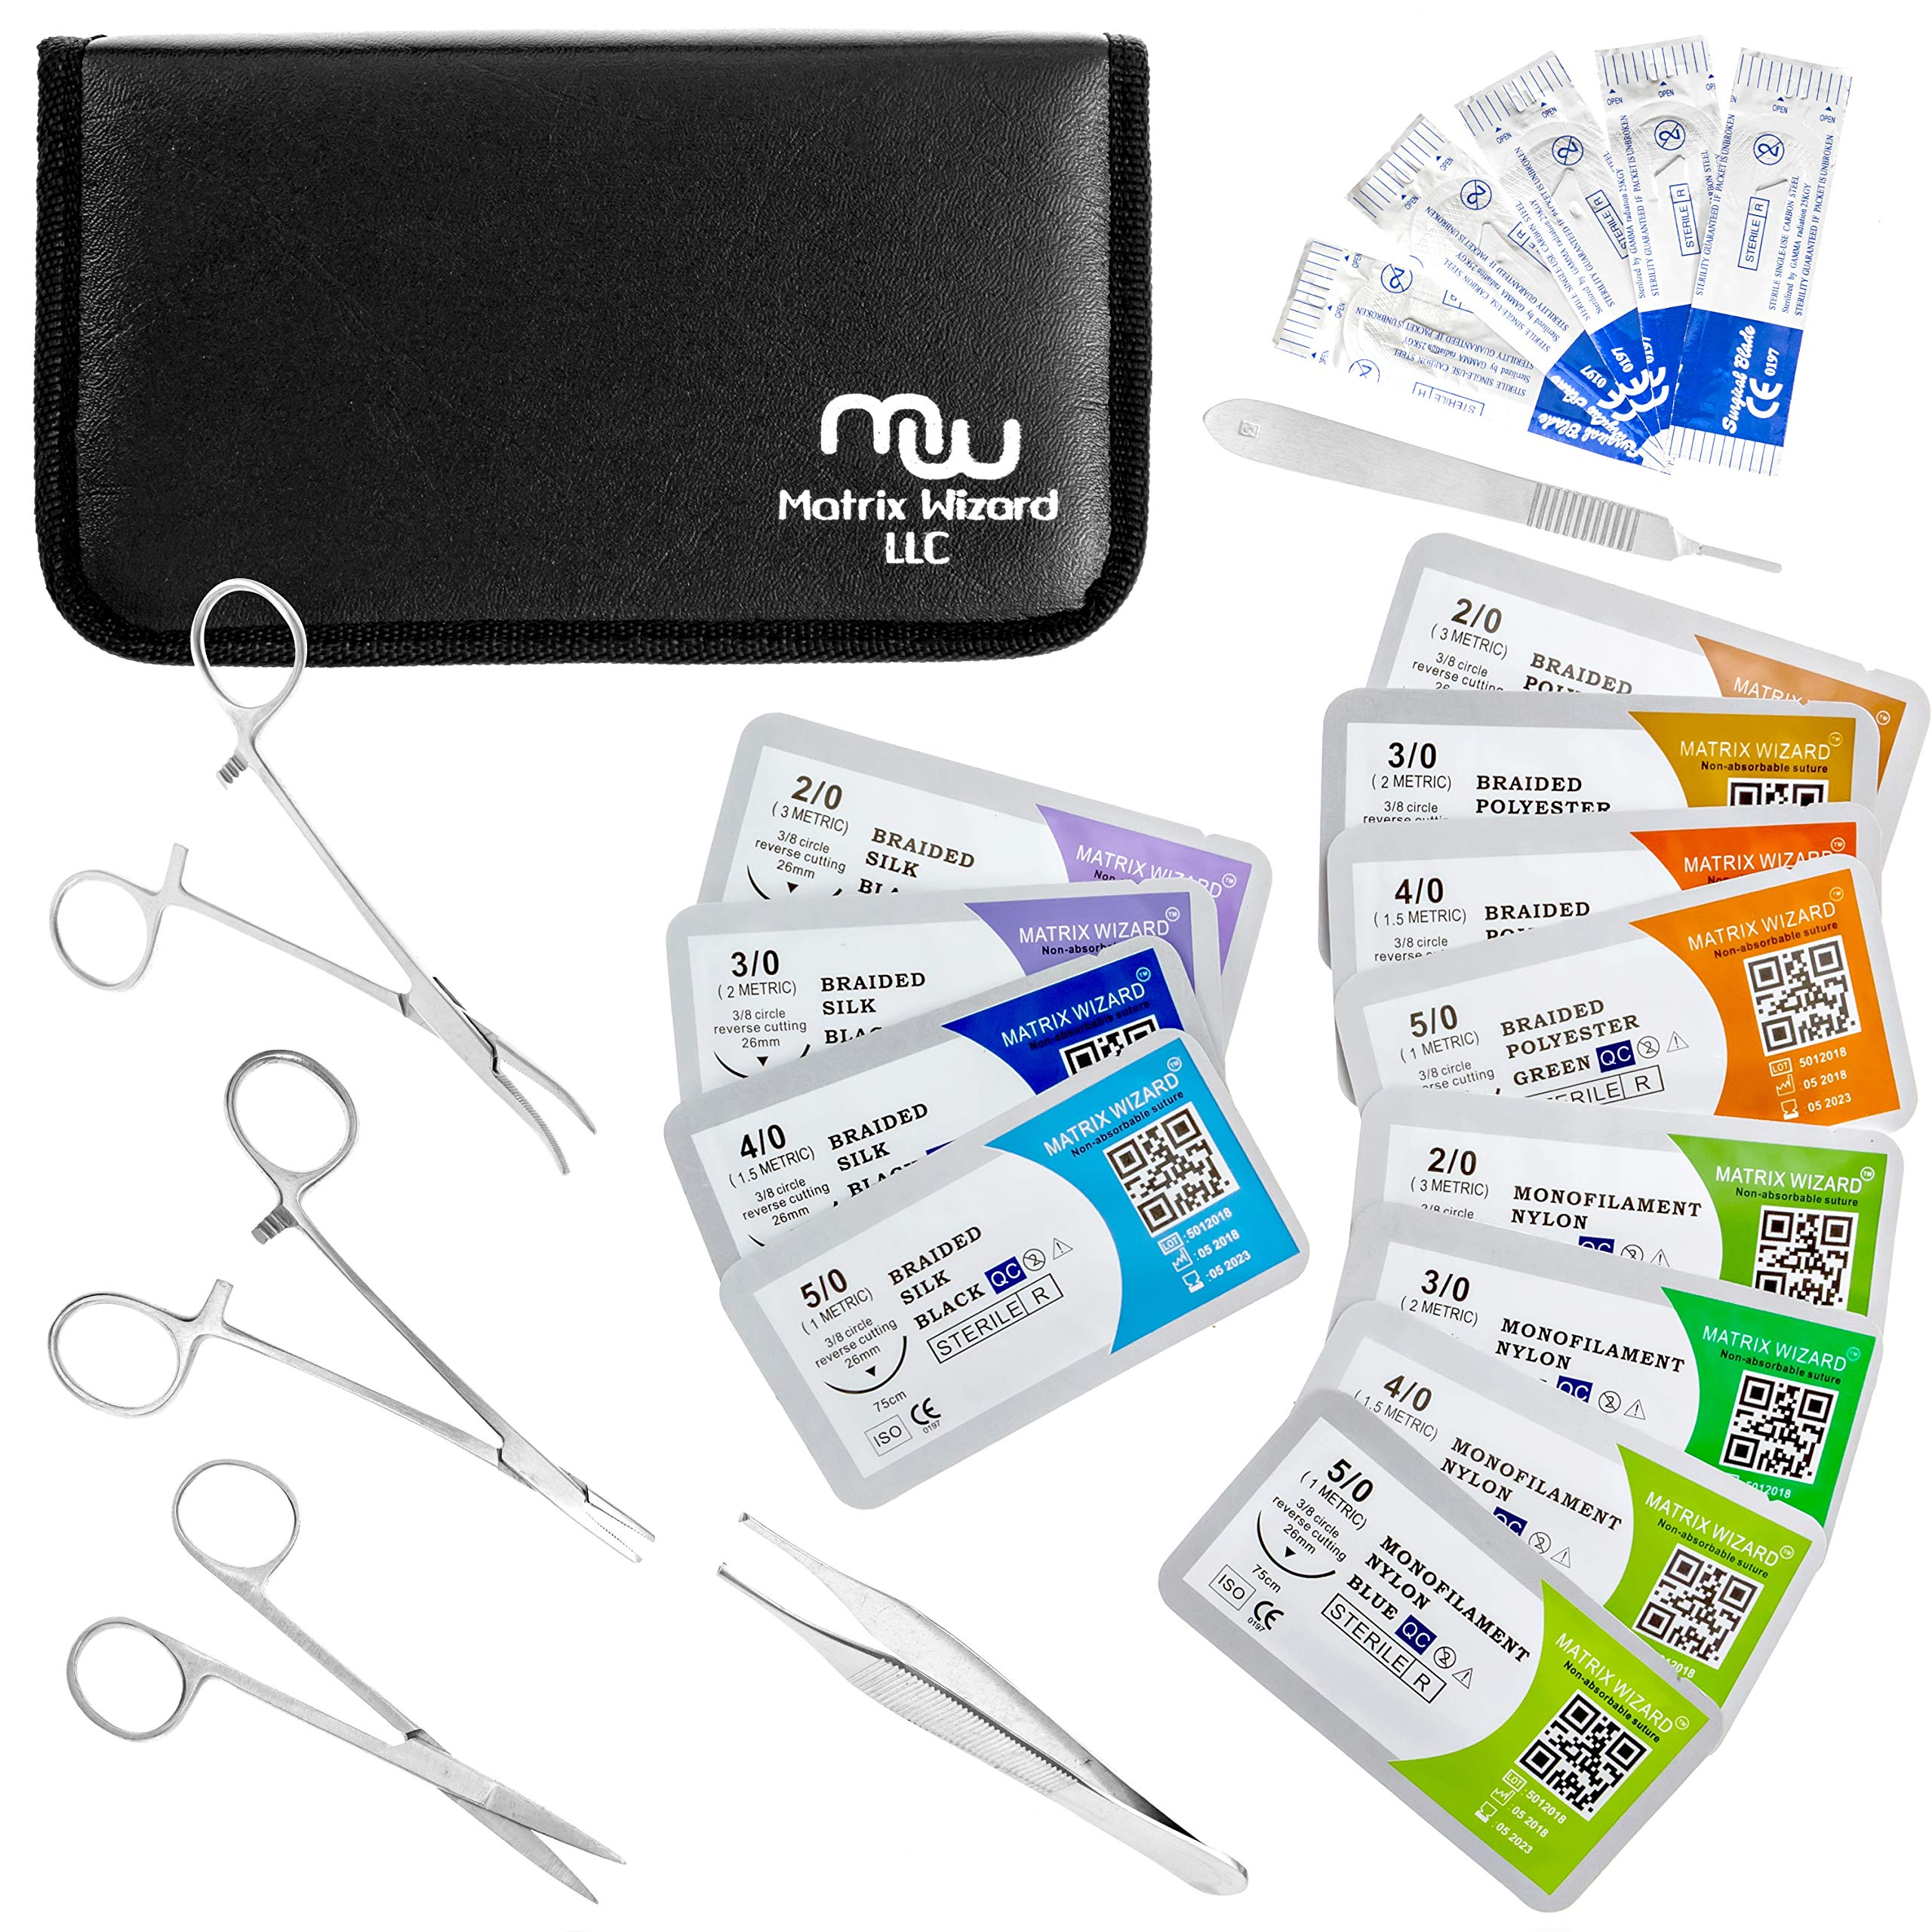 Suture Threads with Needle + Tools for Medical Student's Surgical Practice Suture Kit; Outdoor Camping Emergency Survival Demo; Hospital First Aid Training (Mixed 23Pk 2-0, 3-0, 4-0, 5-0)